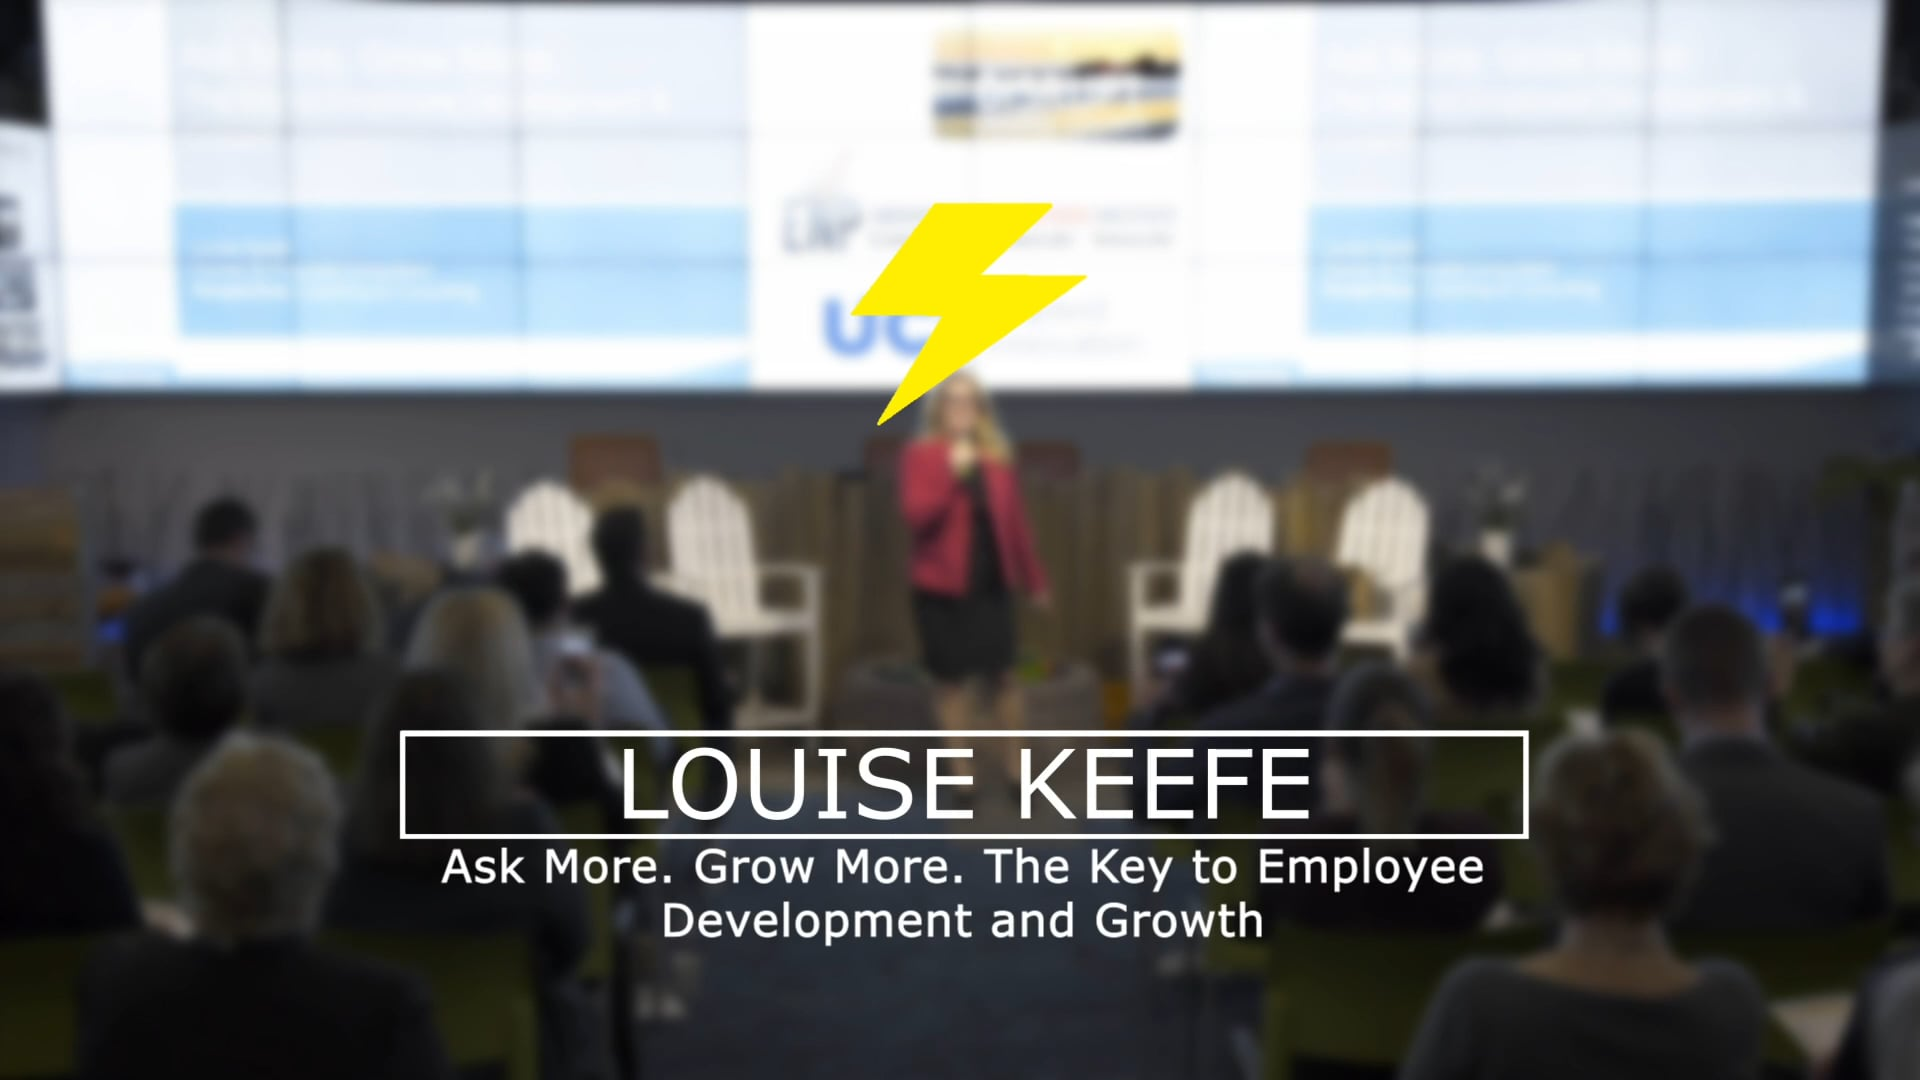 Ask More. Grow More. The Key To Employee Development & Growth | Louise Keefe | DisruptHR Talks